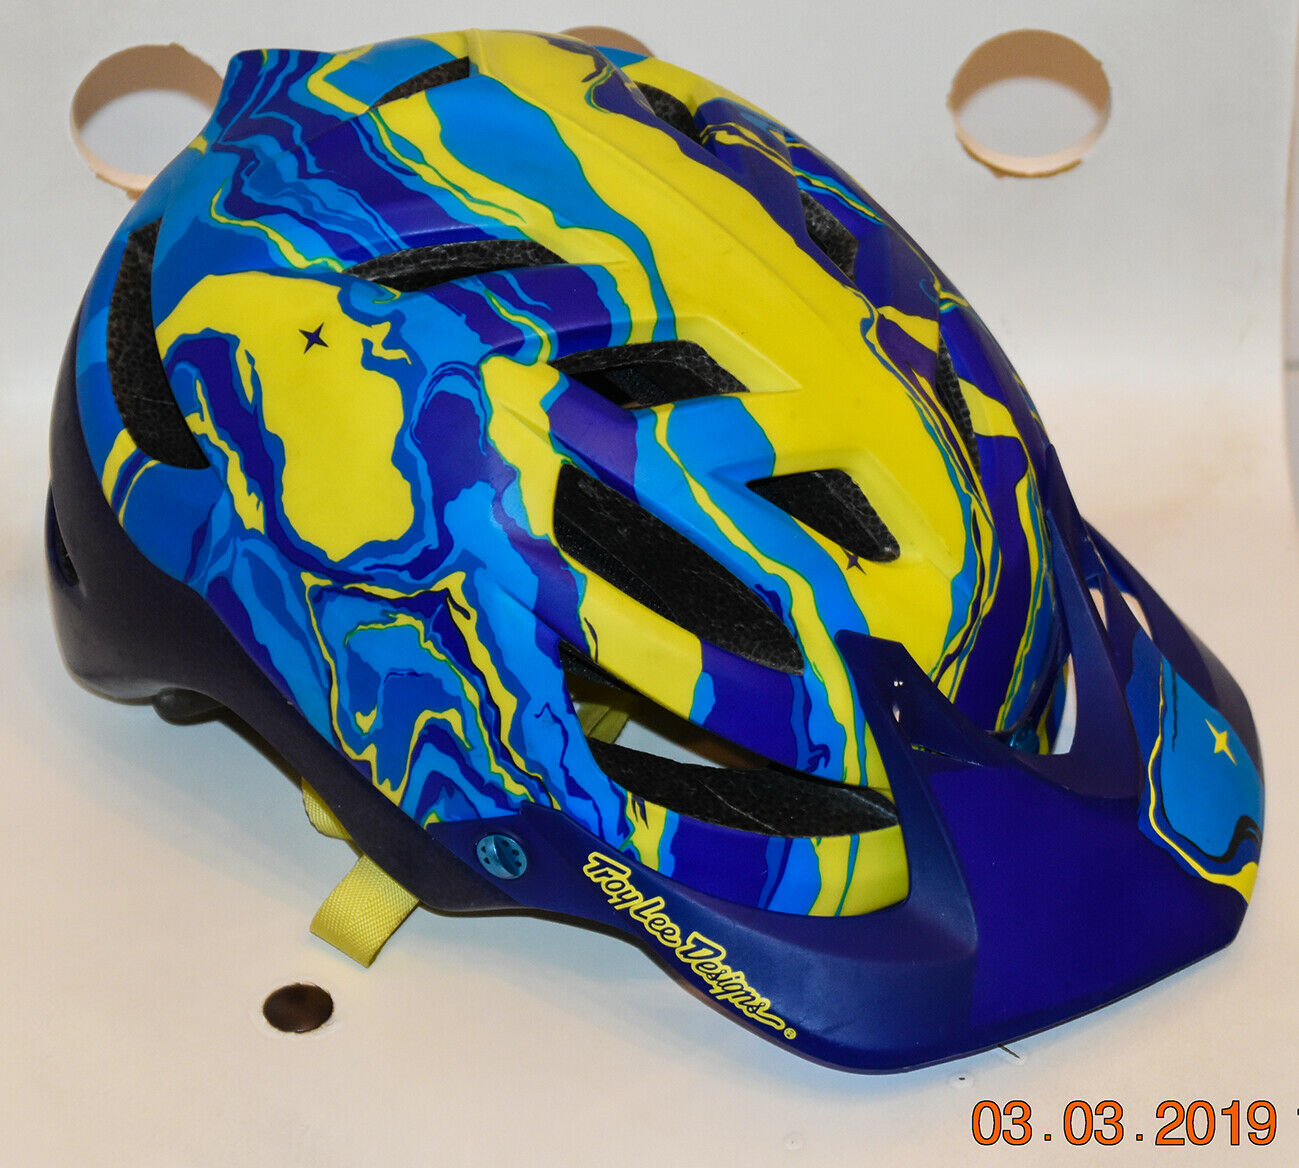 CASCO TROY LEE DESIGN A1 GALAXY blueE AM - taglia XS-S 54 56cm - INTROVABILE